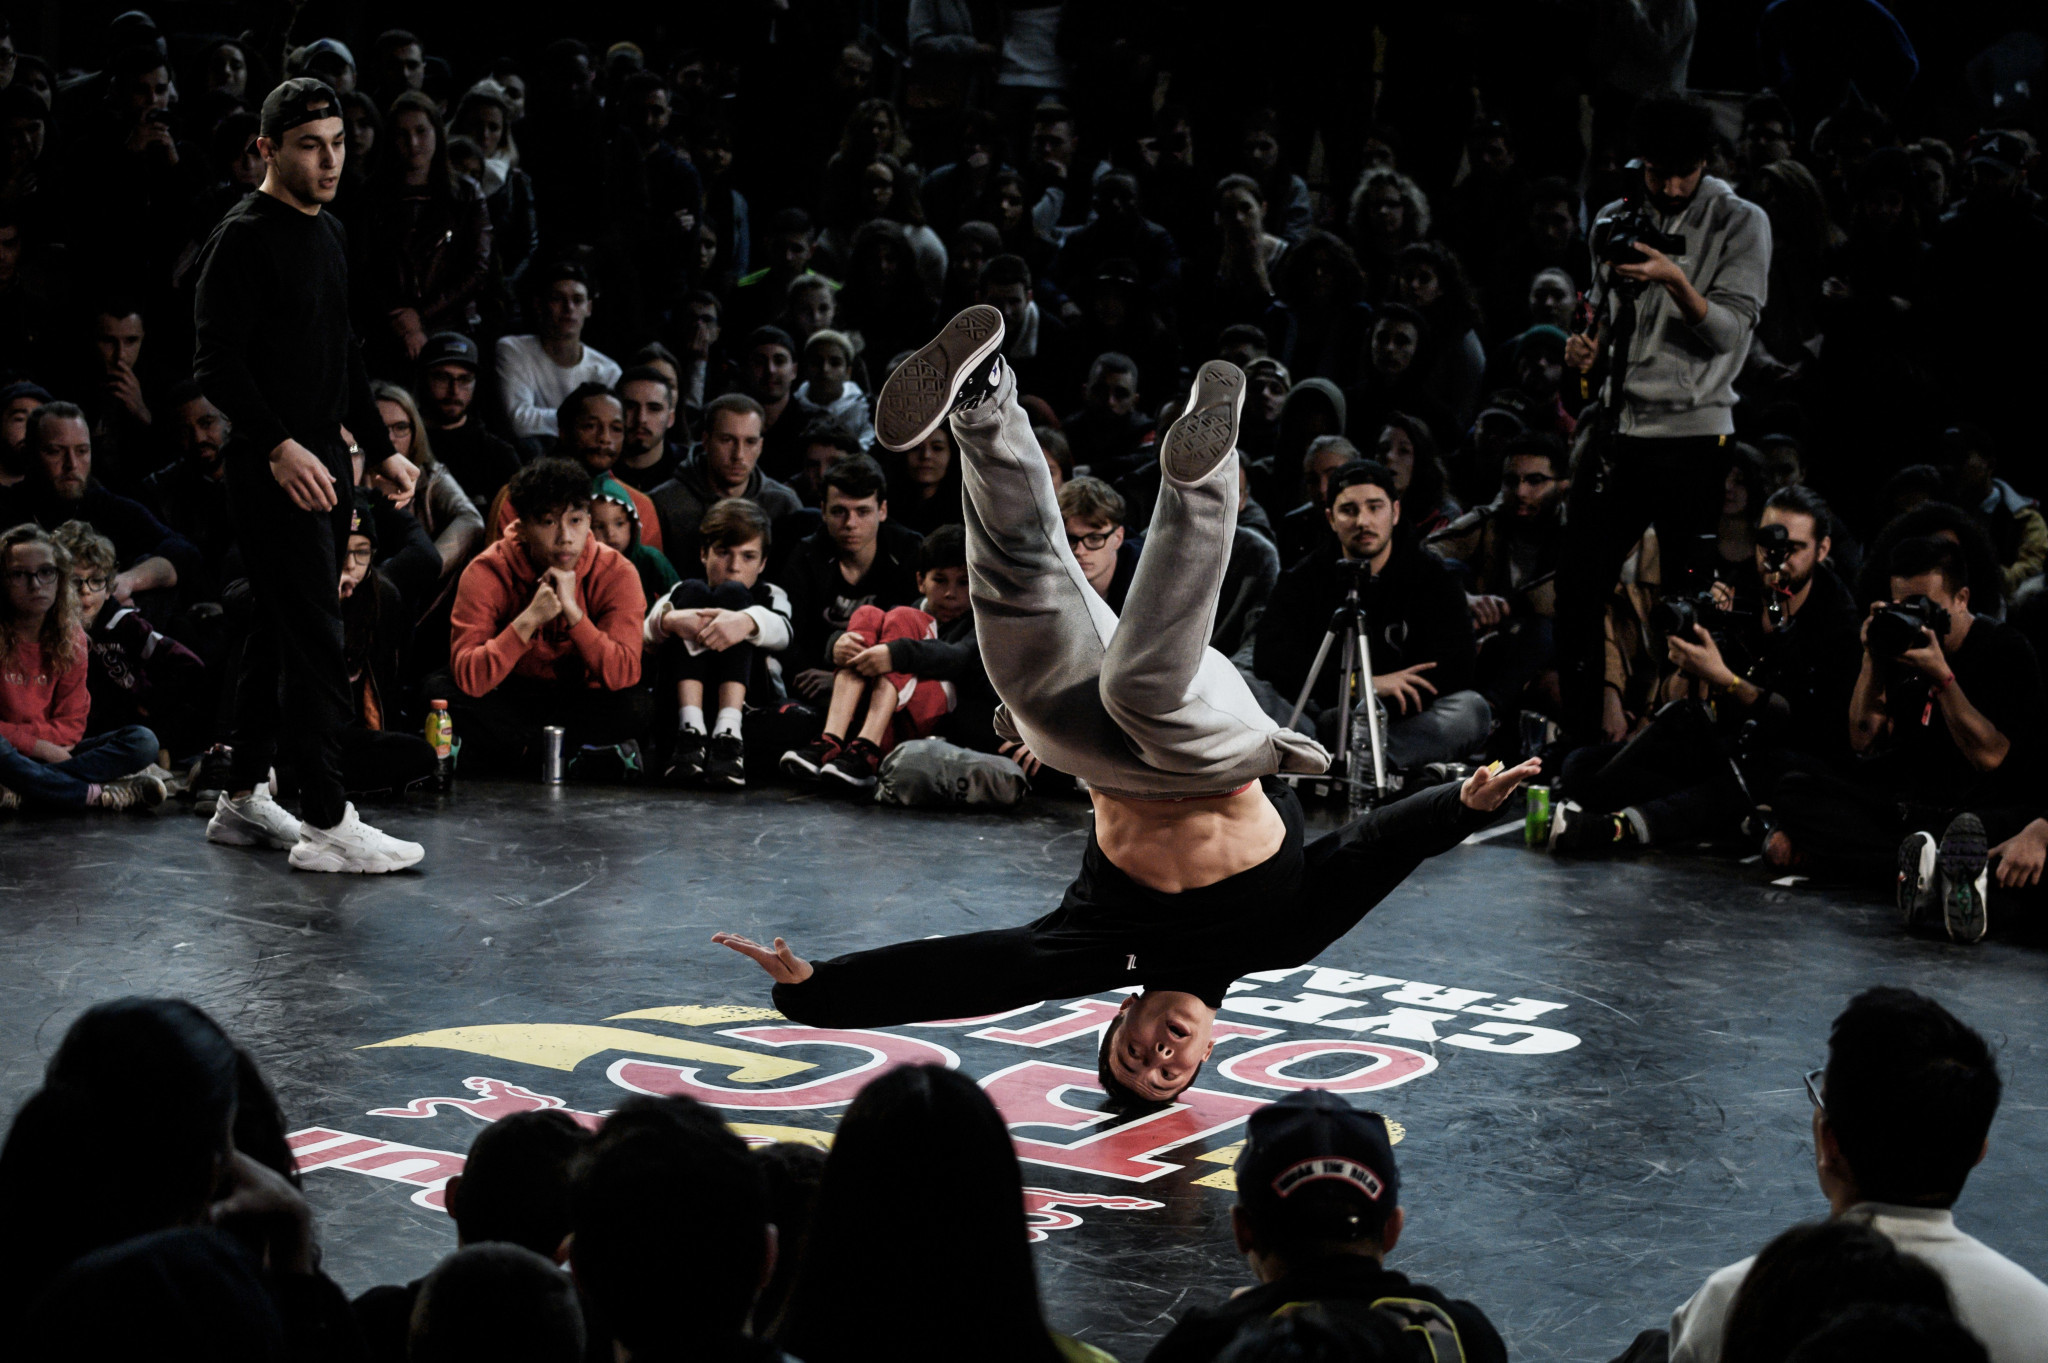 Sports such as breakdancing, which could feature at the Paris 2024 Olympic Games, may appear on the 2023 European Games programme ©Getty Images